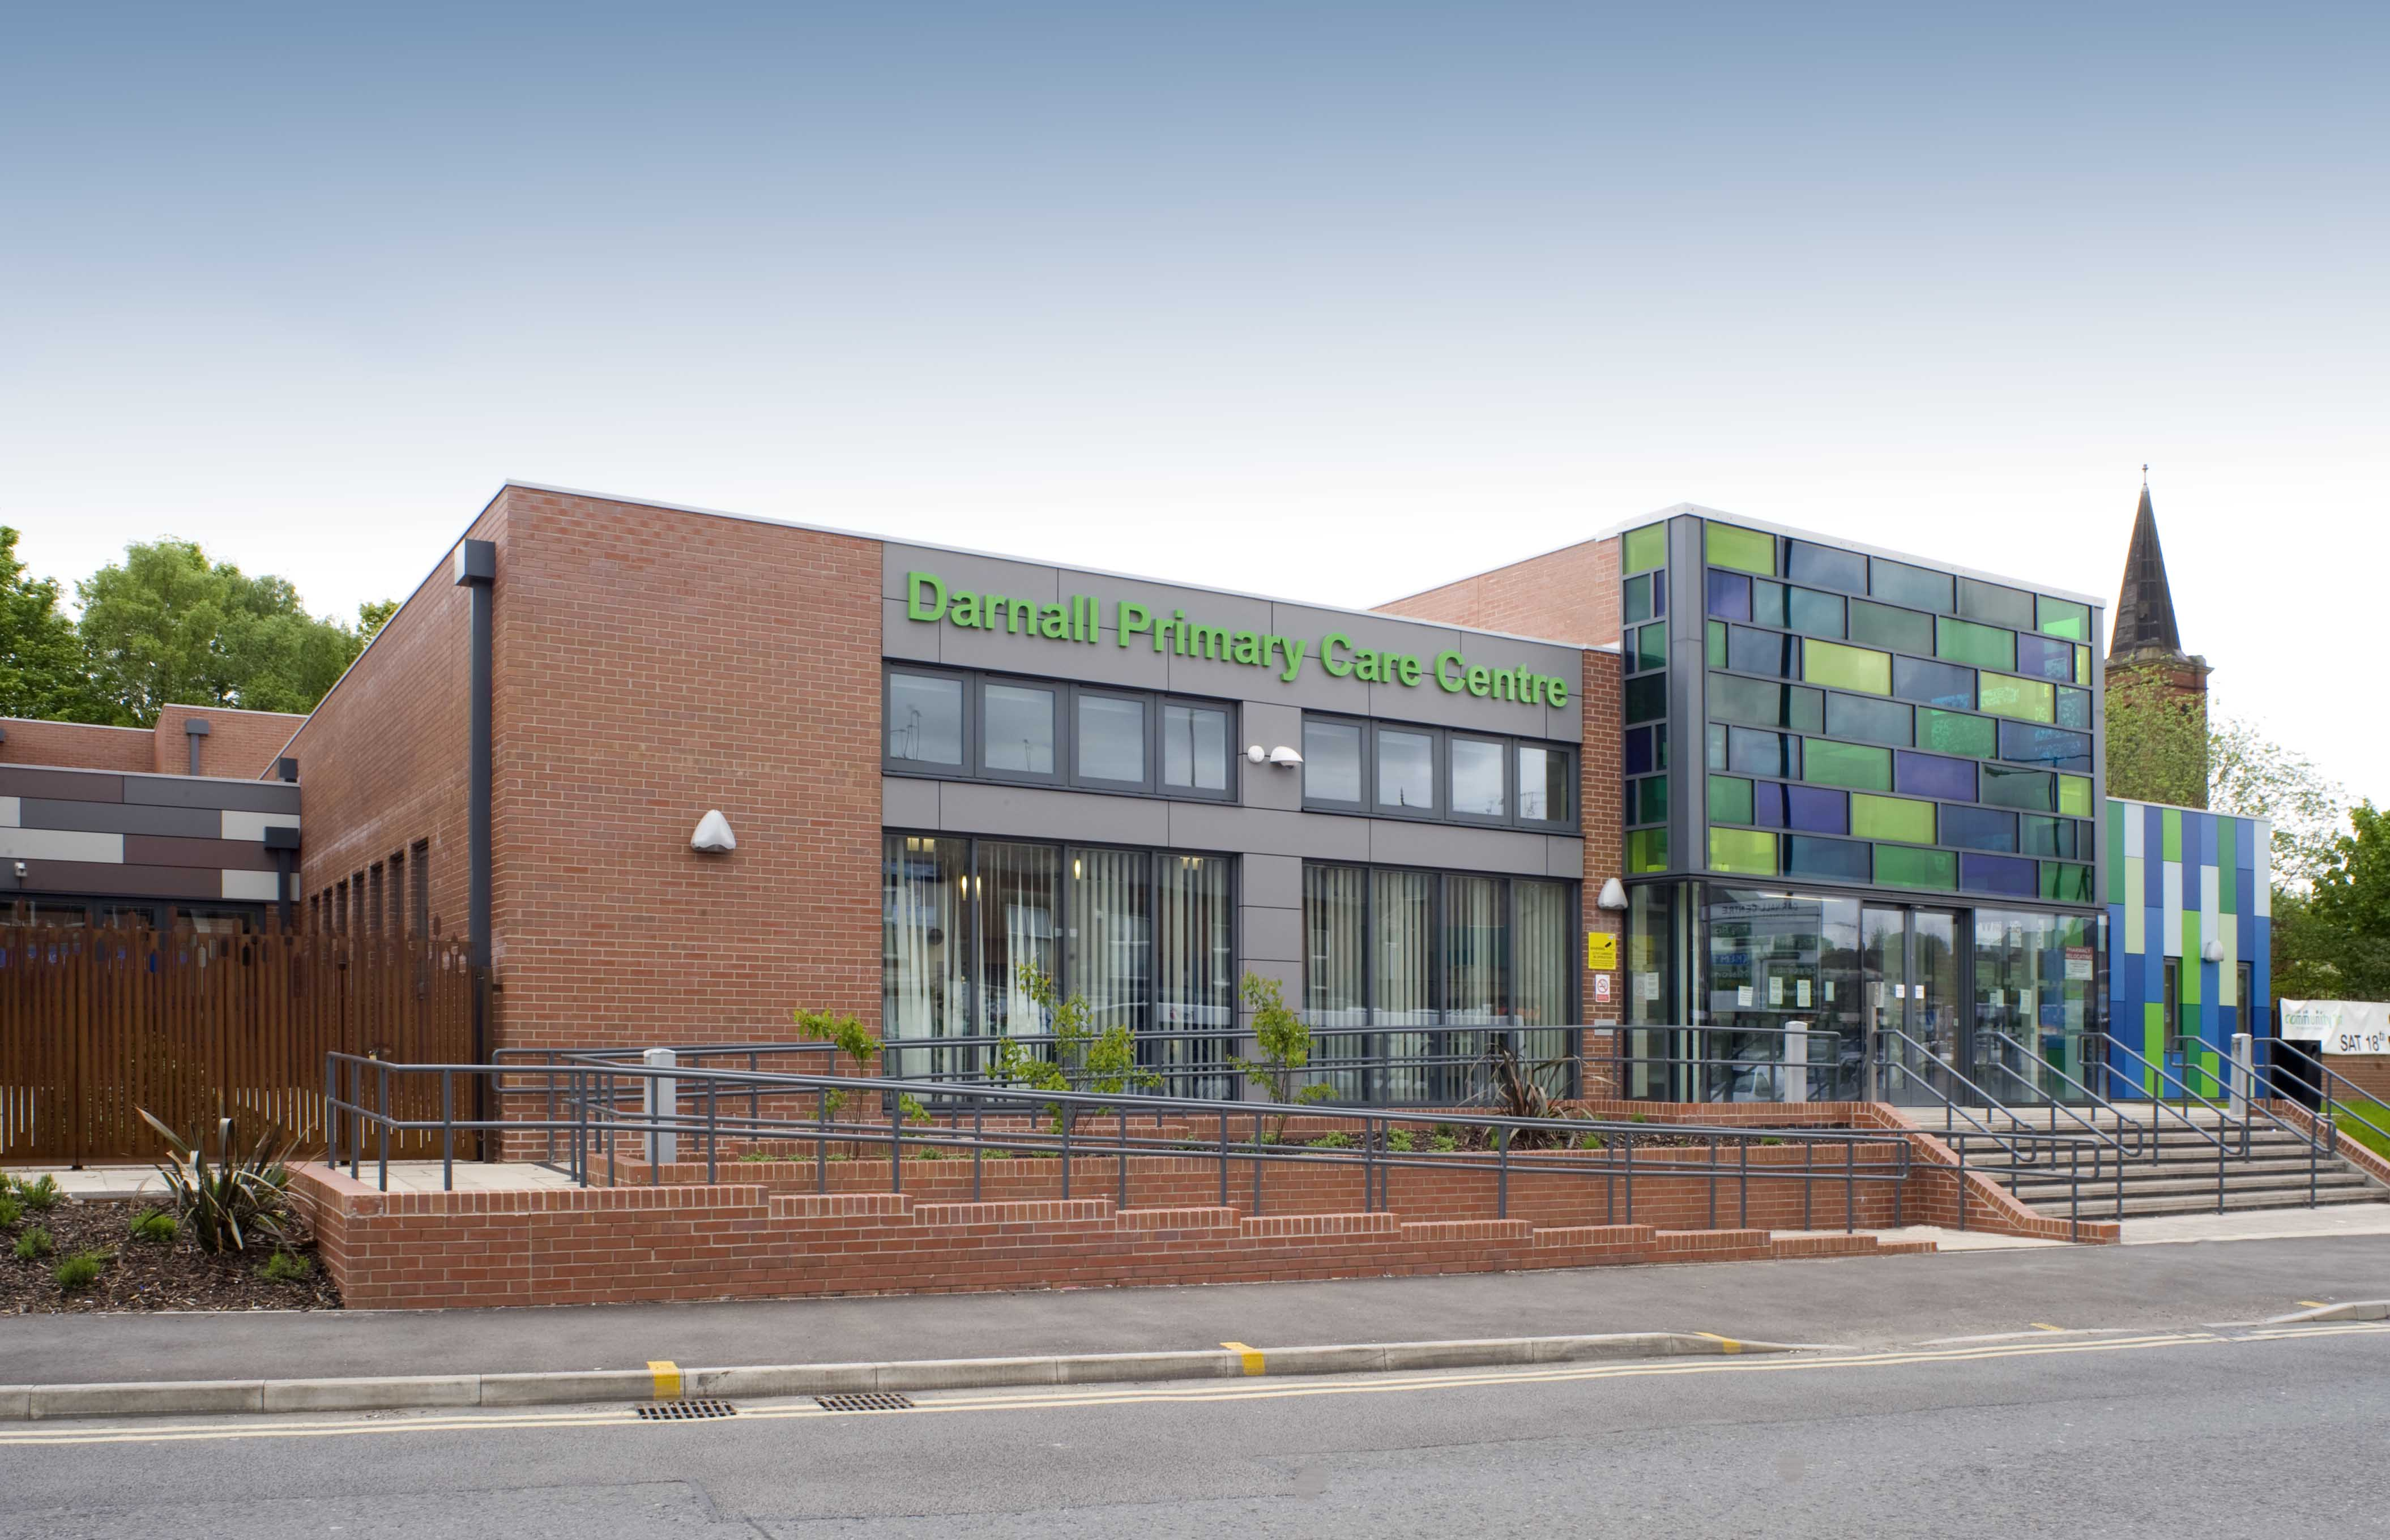 Variation work begins for GP surgery moving to Darnall Primary Care Centre, Sheffield